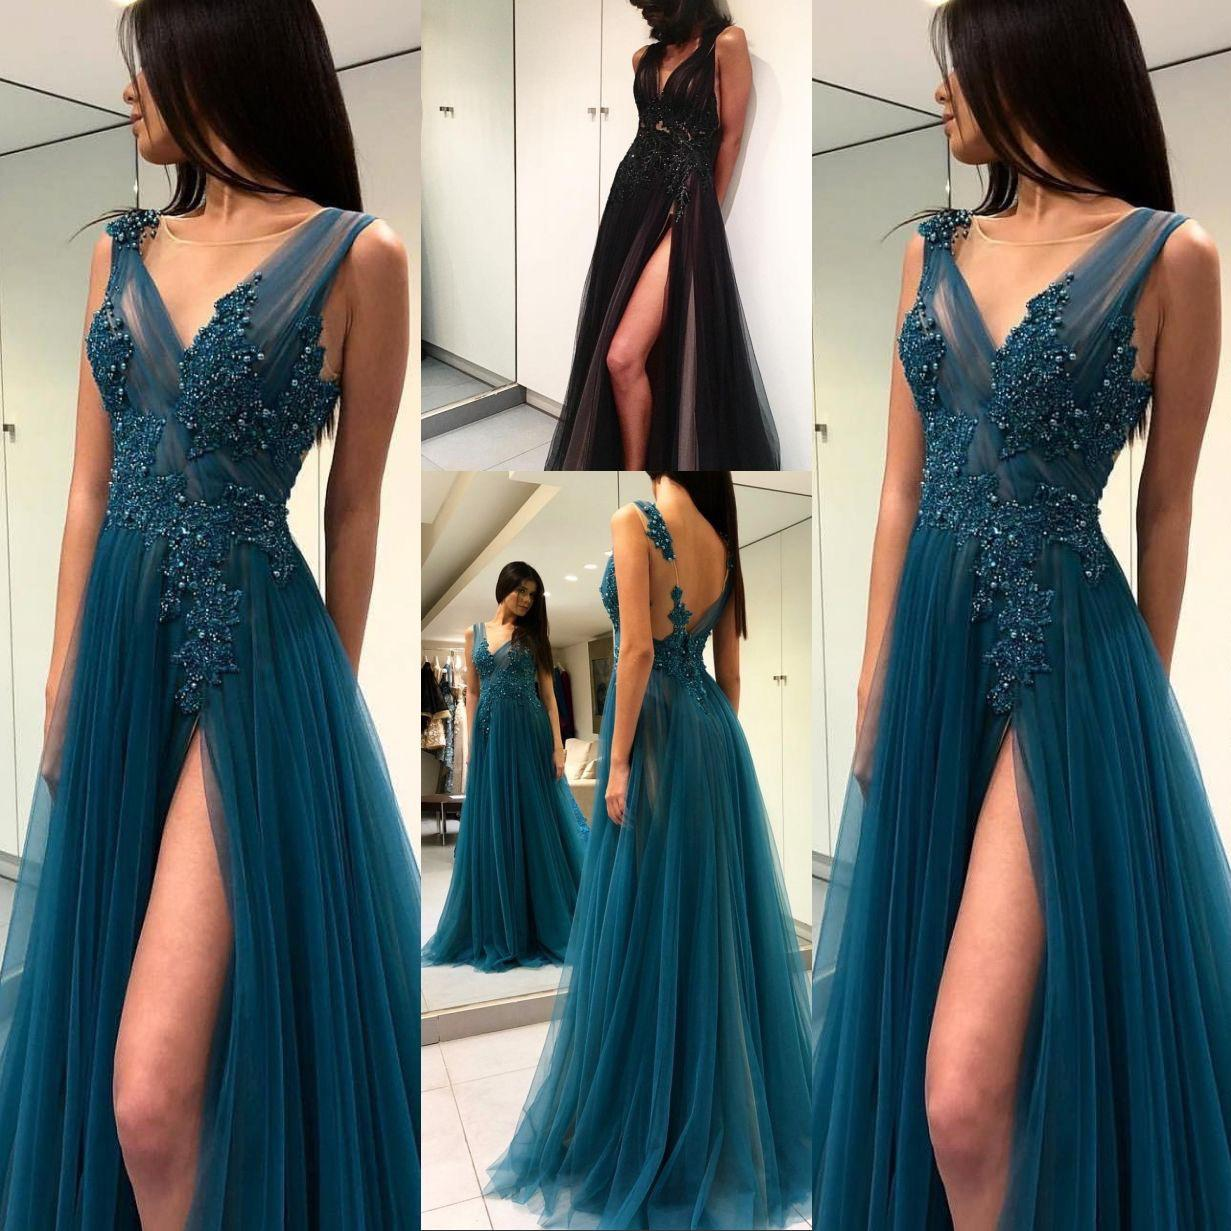 8838d6b0b26e Sexy Prom Dresses A Line Deep V Neck Lace Appliques Thigh High Slit Open  Back Evening Party Dresses Sheer Long Evening Gowns DP0100 Petite Prom  Dresses Uk ...